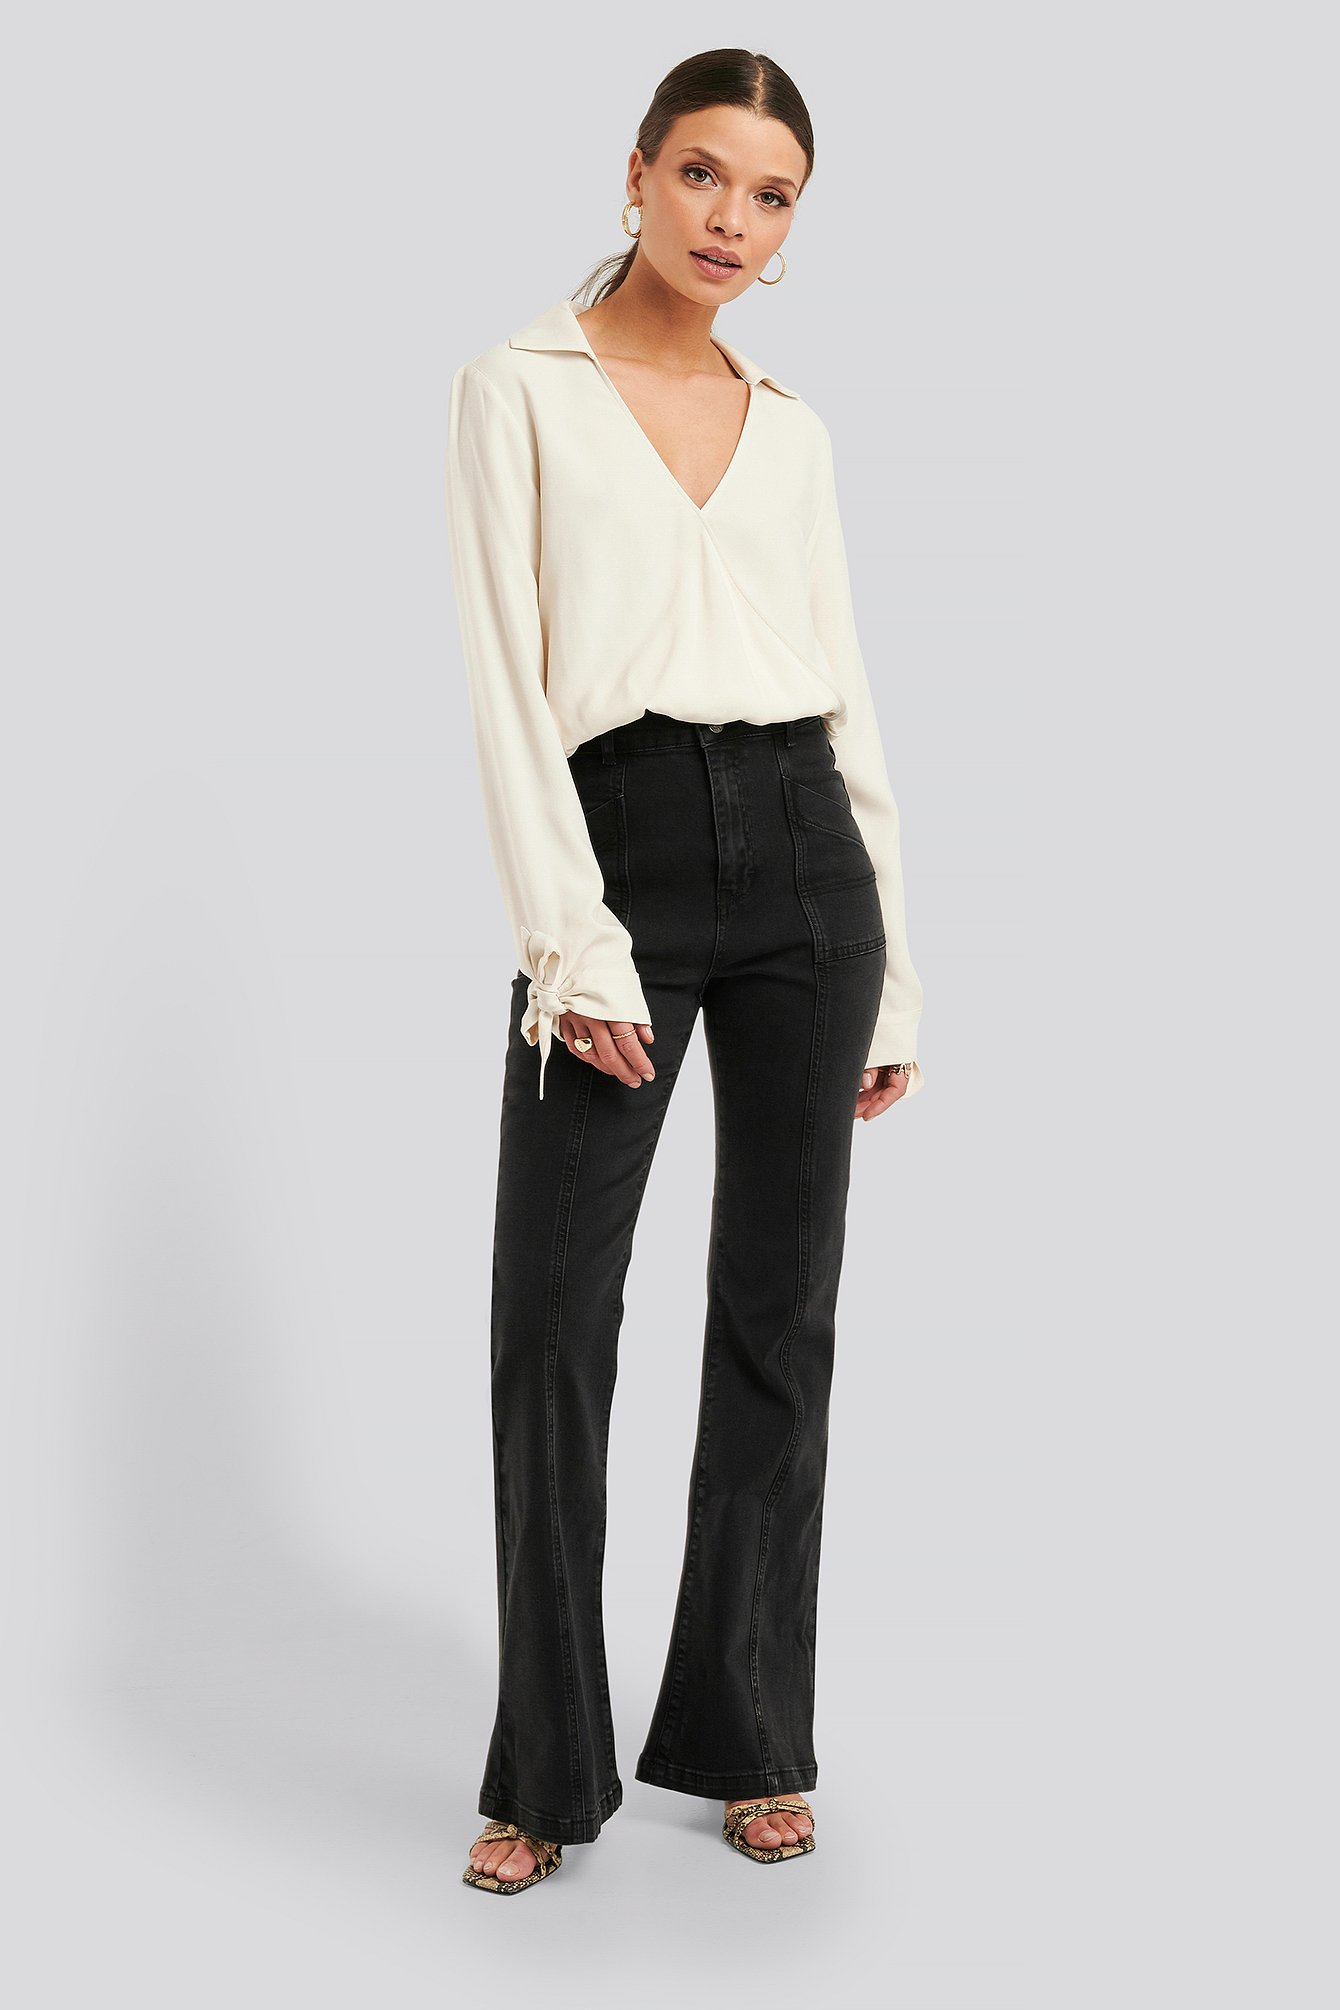 na-kd trend -  High Waist Front Seam Flare Jeans - Black